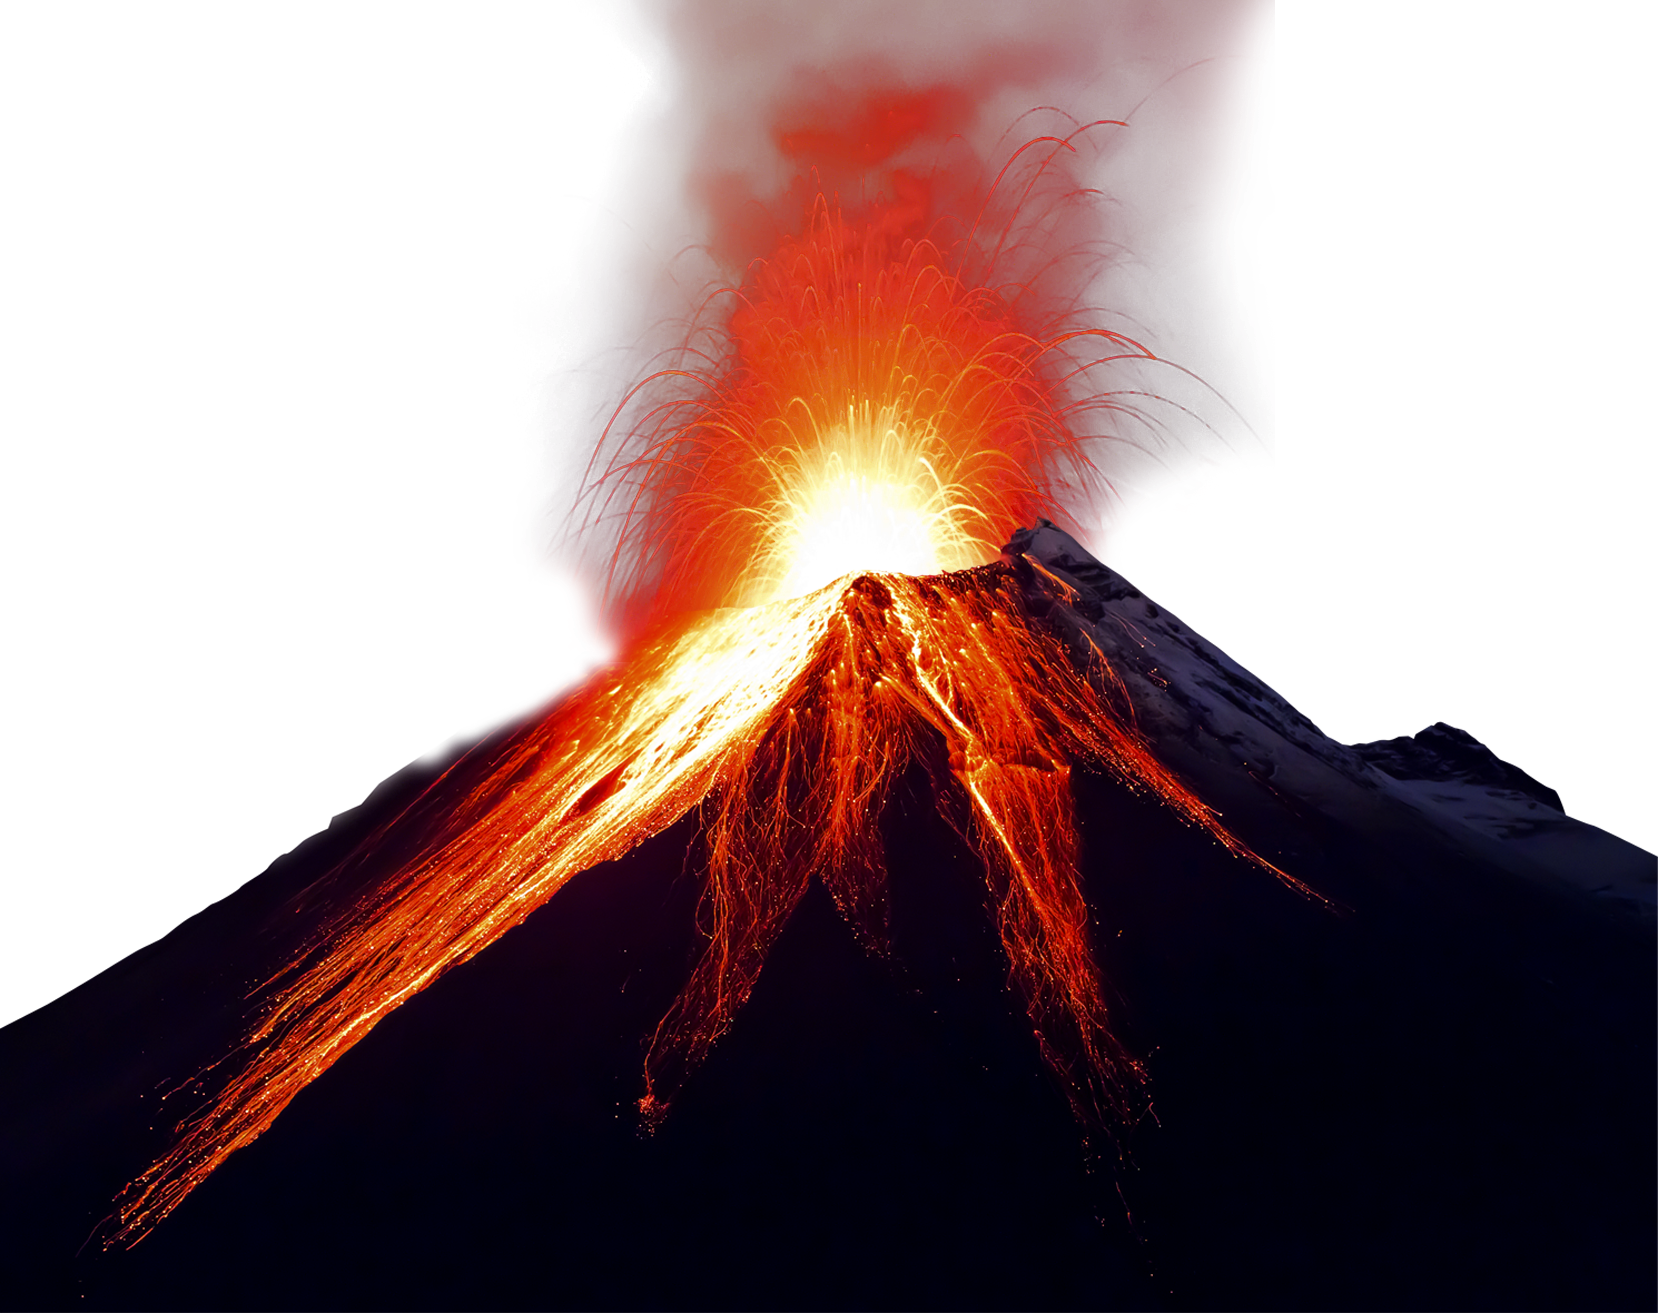 Volcano Png Images Free Volcano Images Png Transparent Images